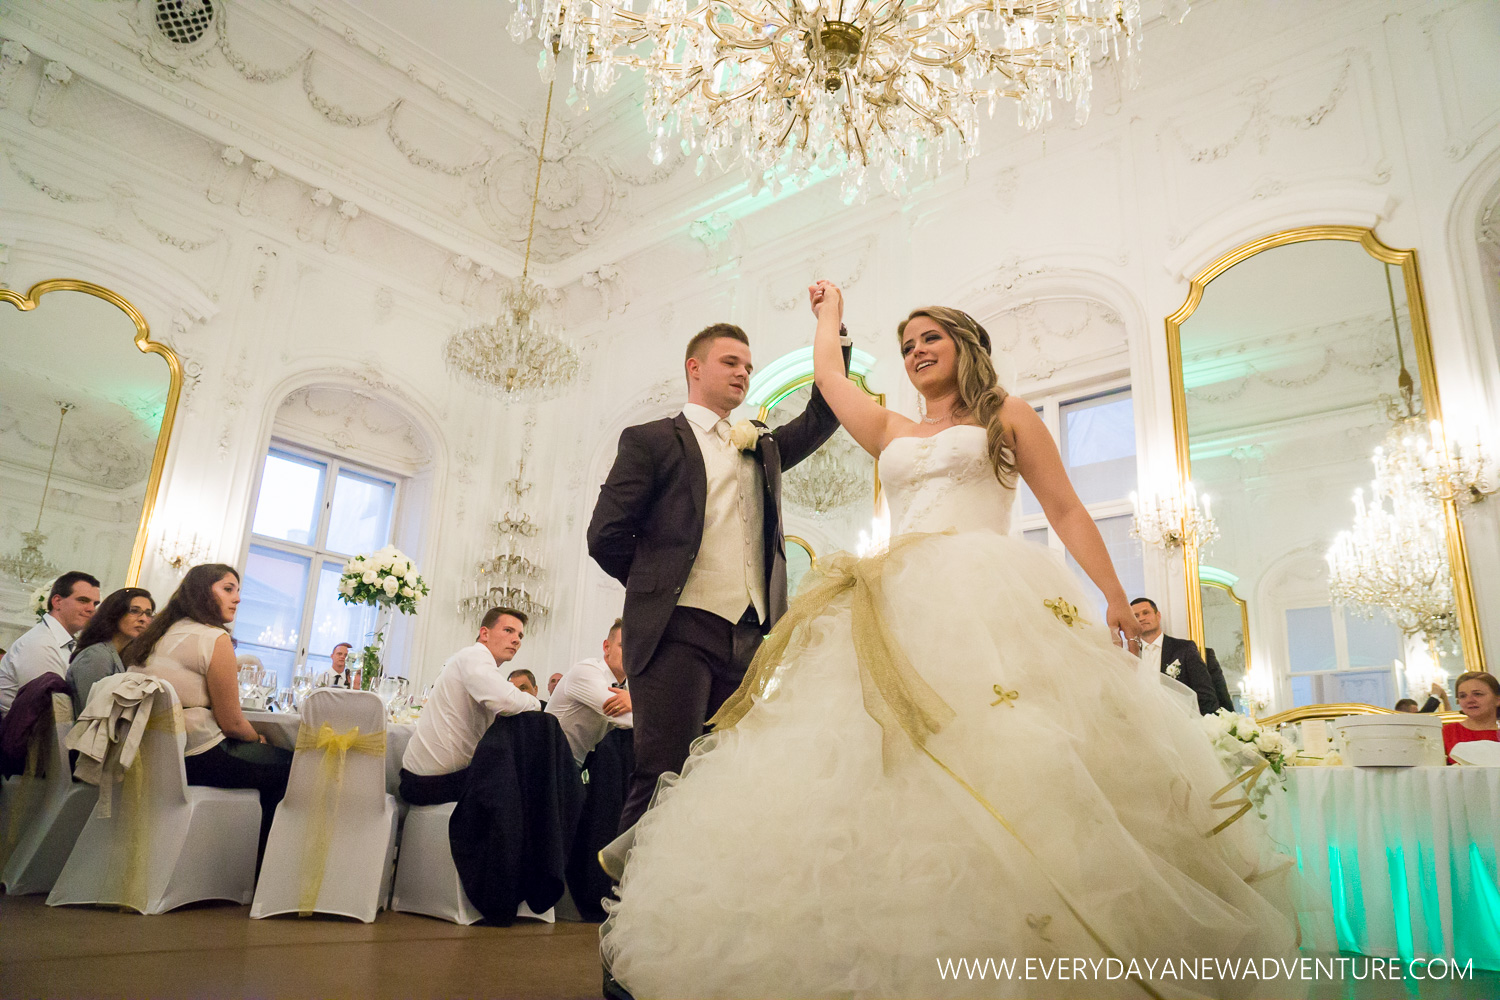 [SqSp1500-028] Budapest - Inez and Arni's Wedding!-245.jpg